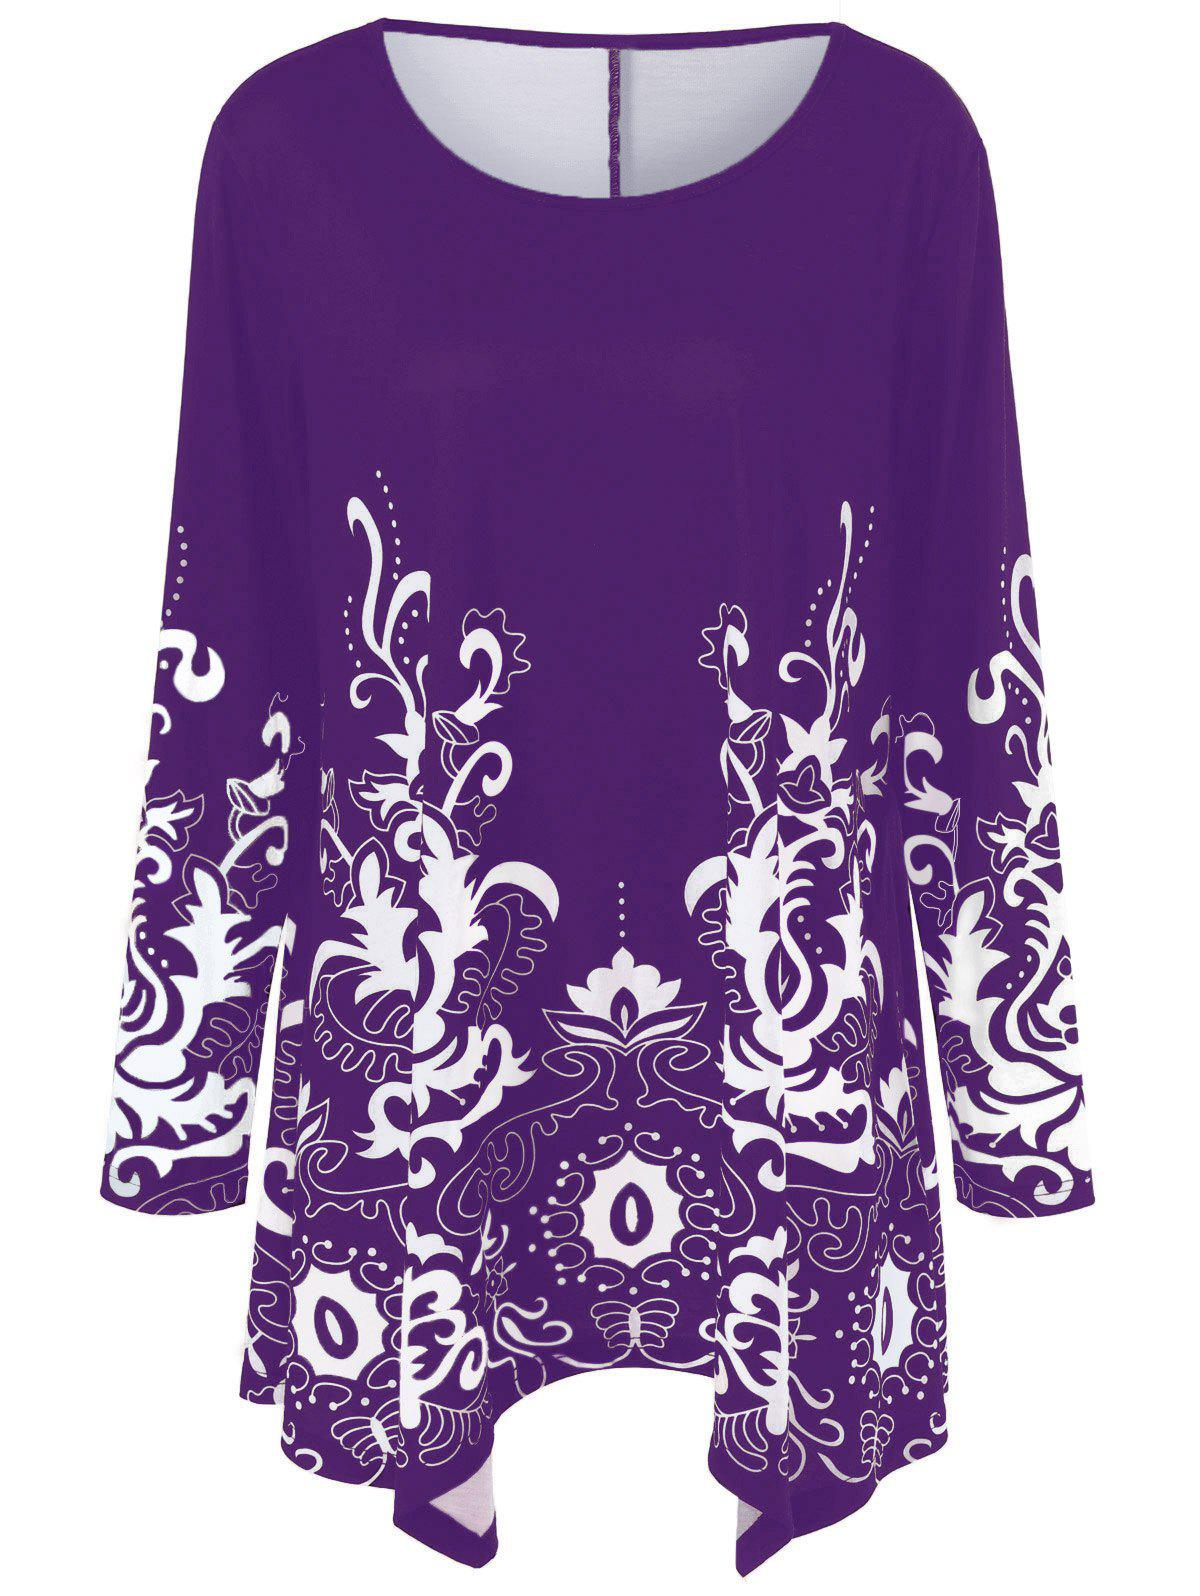 Plus Size Floral Print Asymmetric T-Shirt - PURPLE XL